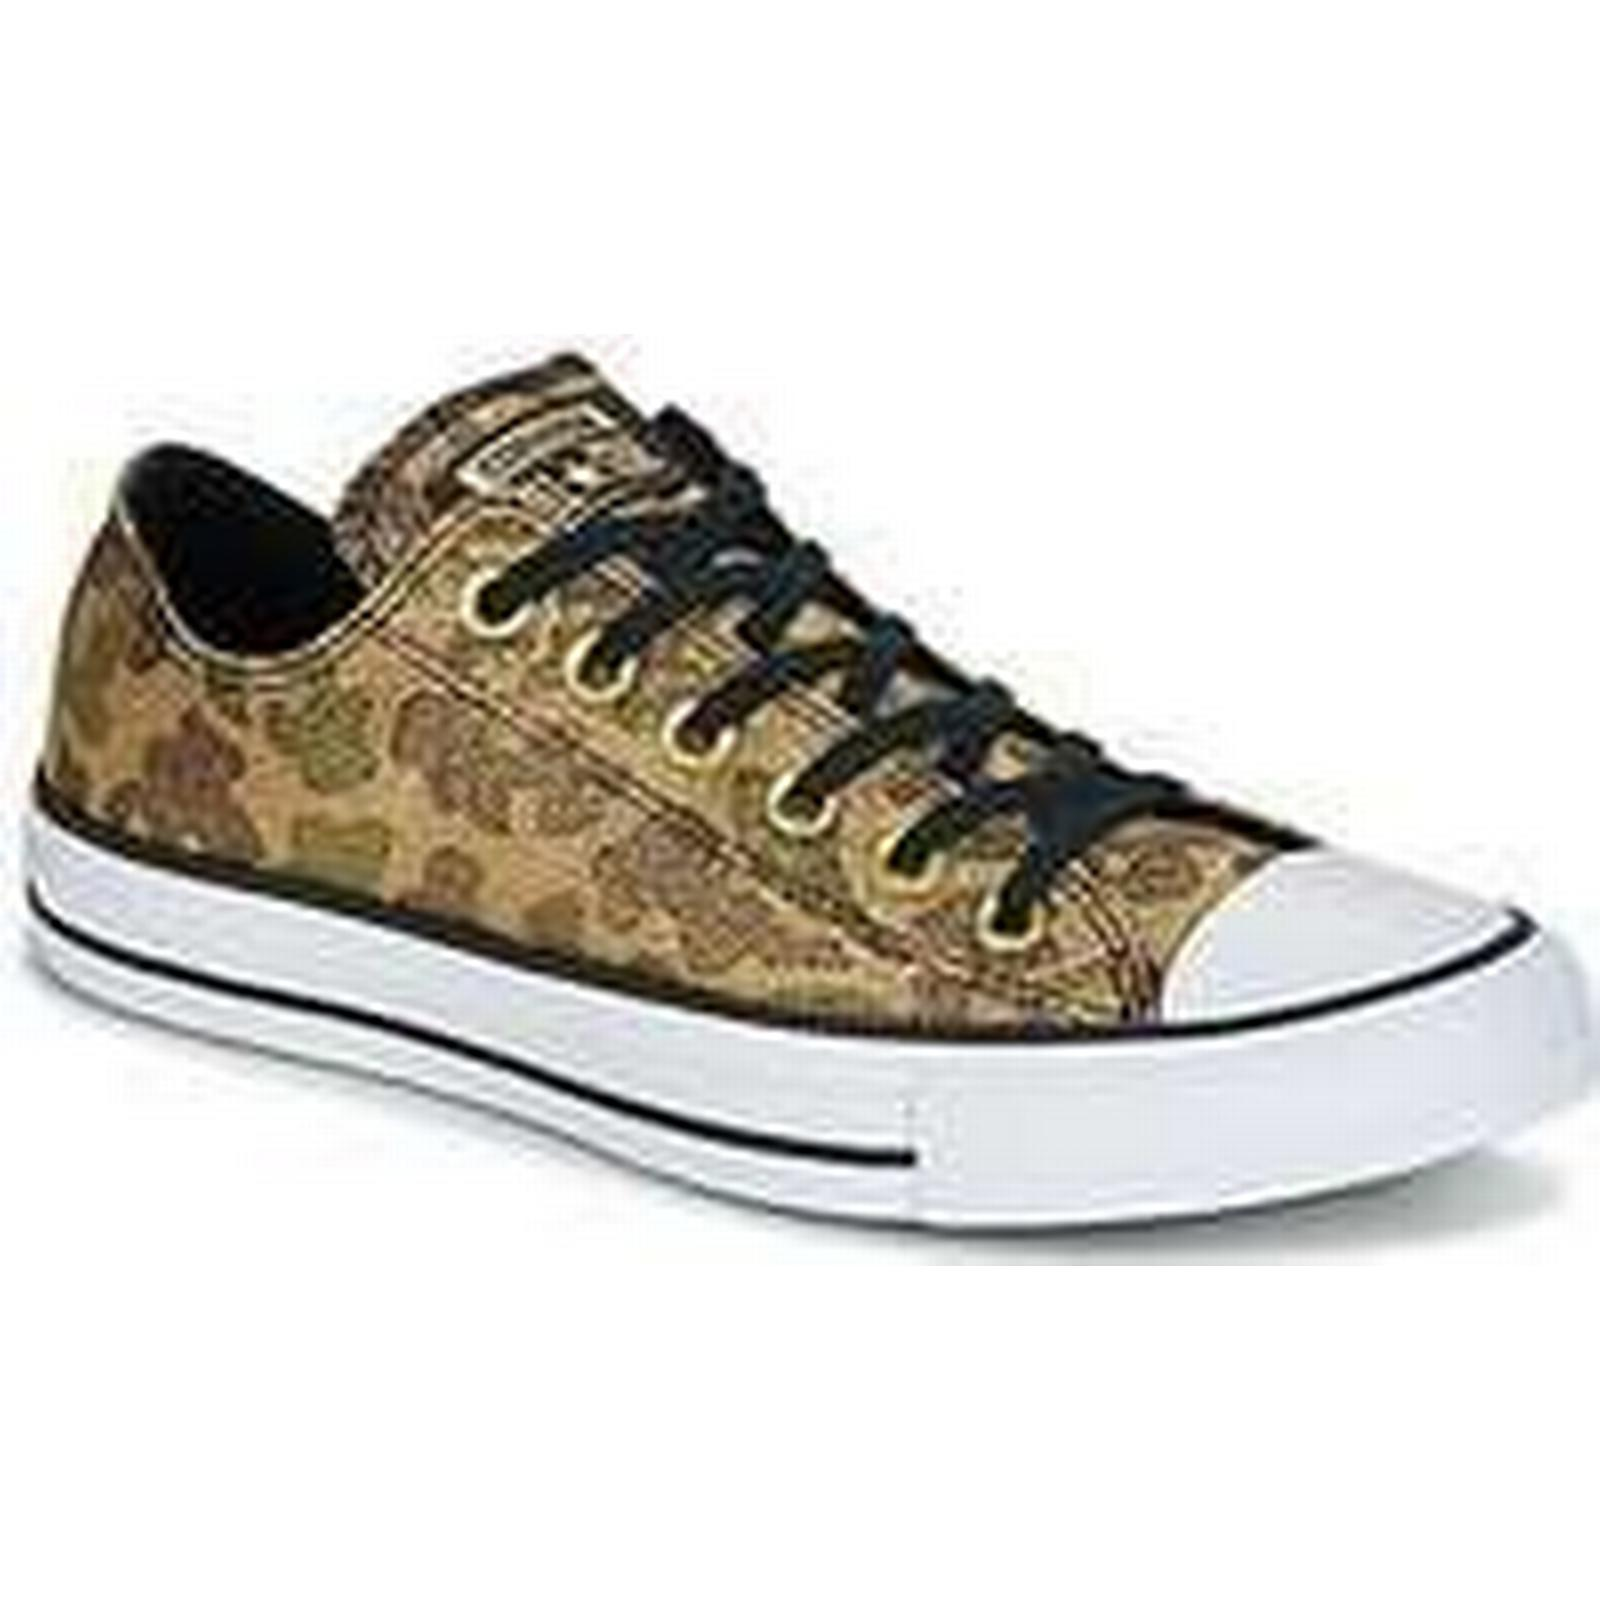 Spartoo.co.uk Converse Chuck Taylor Camo All Star Ox Lurex Camo Taylor women's Shoes (Trainers) in Gold 68d2e3